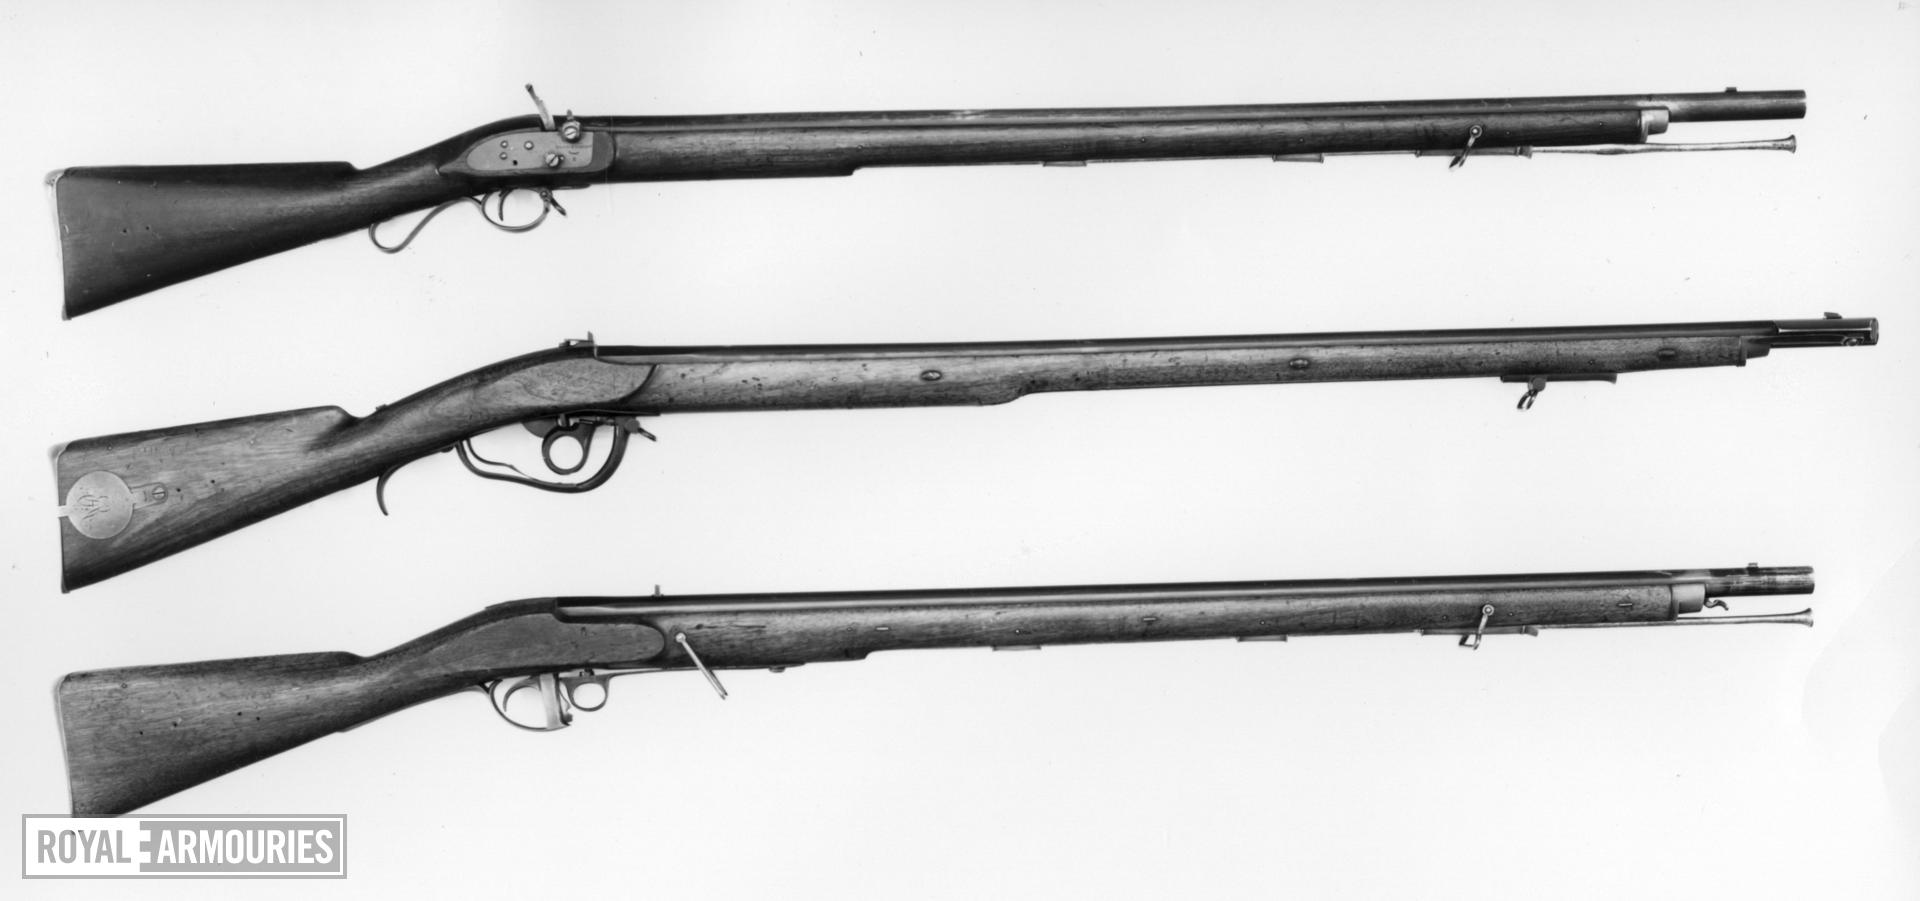 Percussion muzzle-loading musket - Lacy and Davis Patent